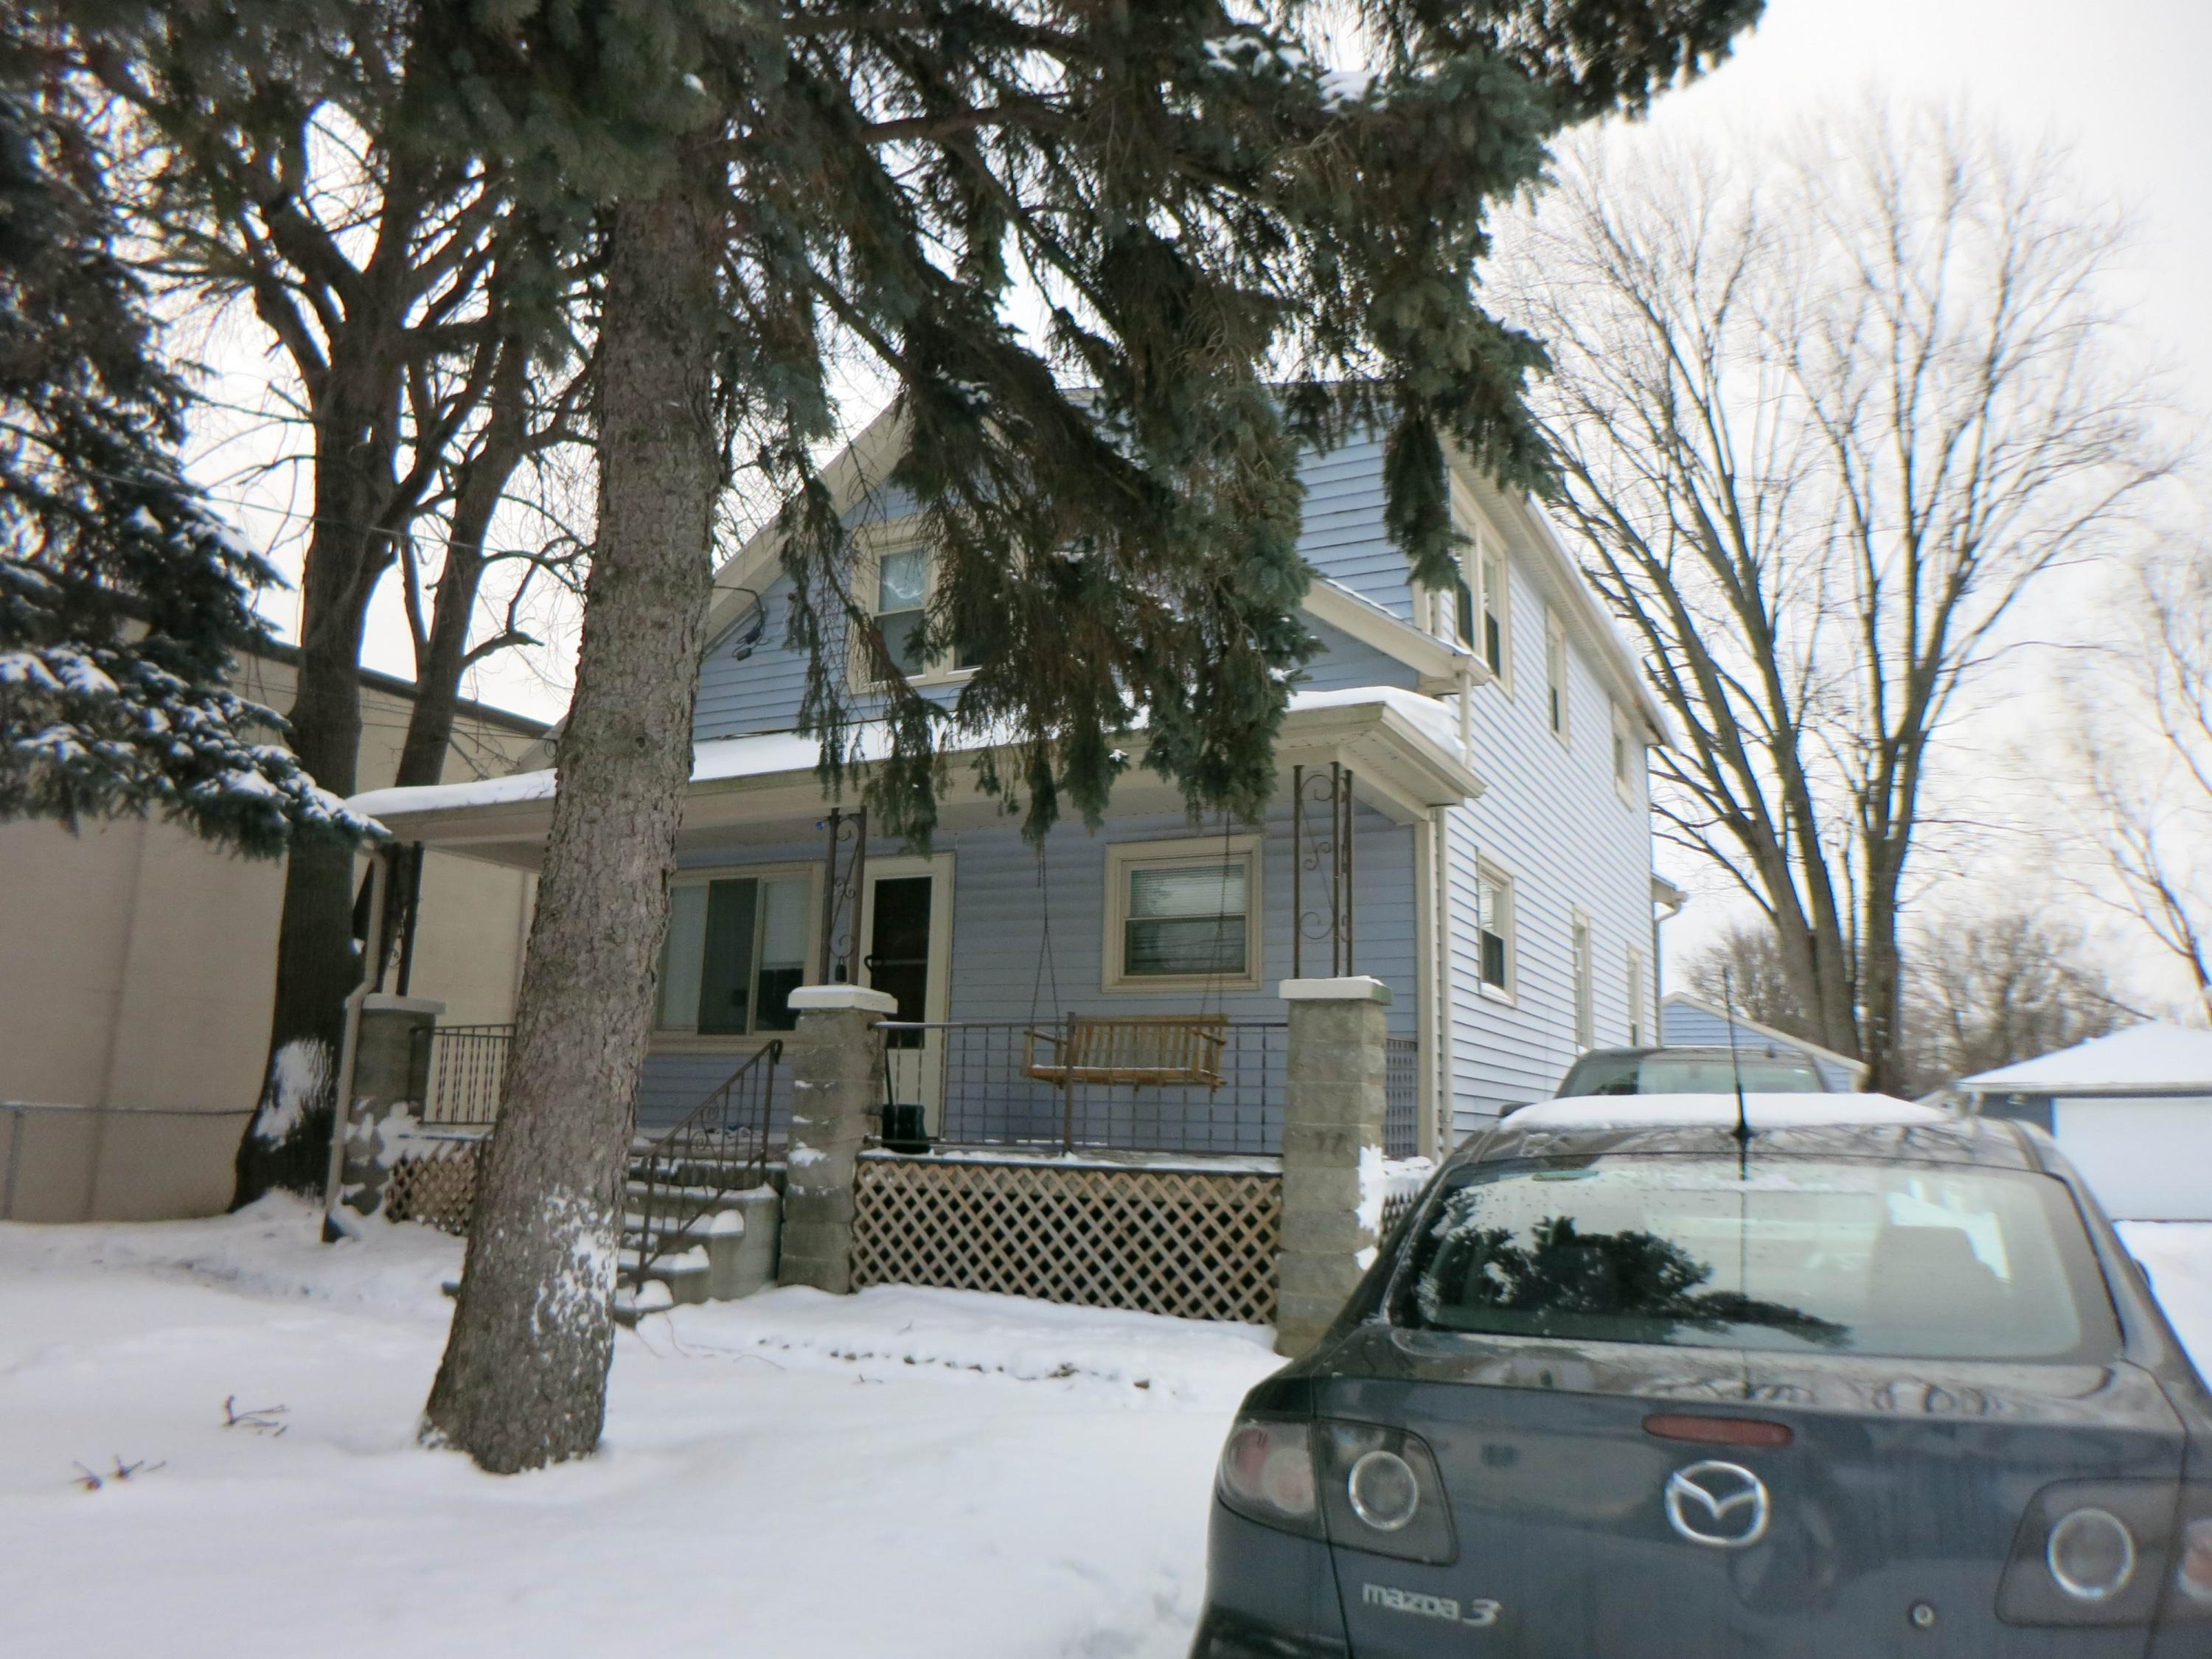 3357 Mallory Ave, Cudahy, Wisconsin 53110, 2 Bedrooms Bedrooms, 4 Rooms Rooms,1 BathroomBathrooms,Two-Family,For Sale,Mallory Ave,1,1620386